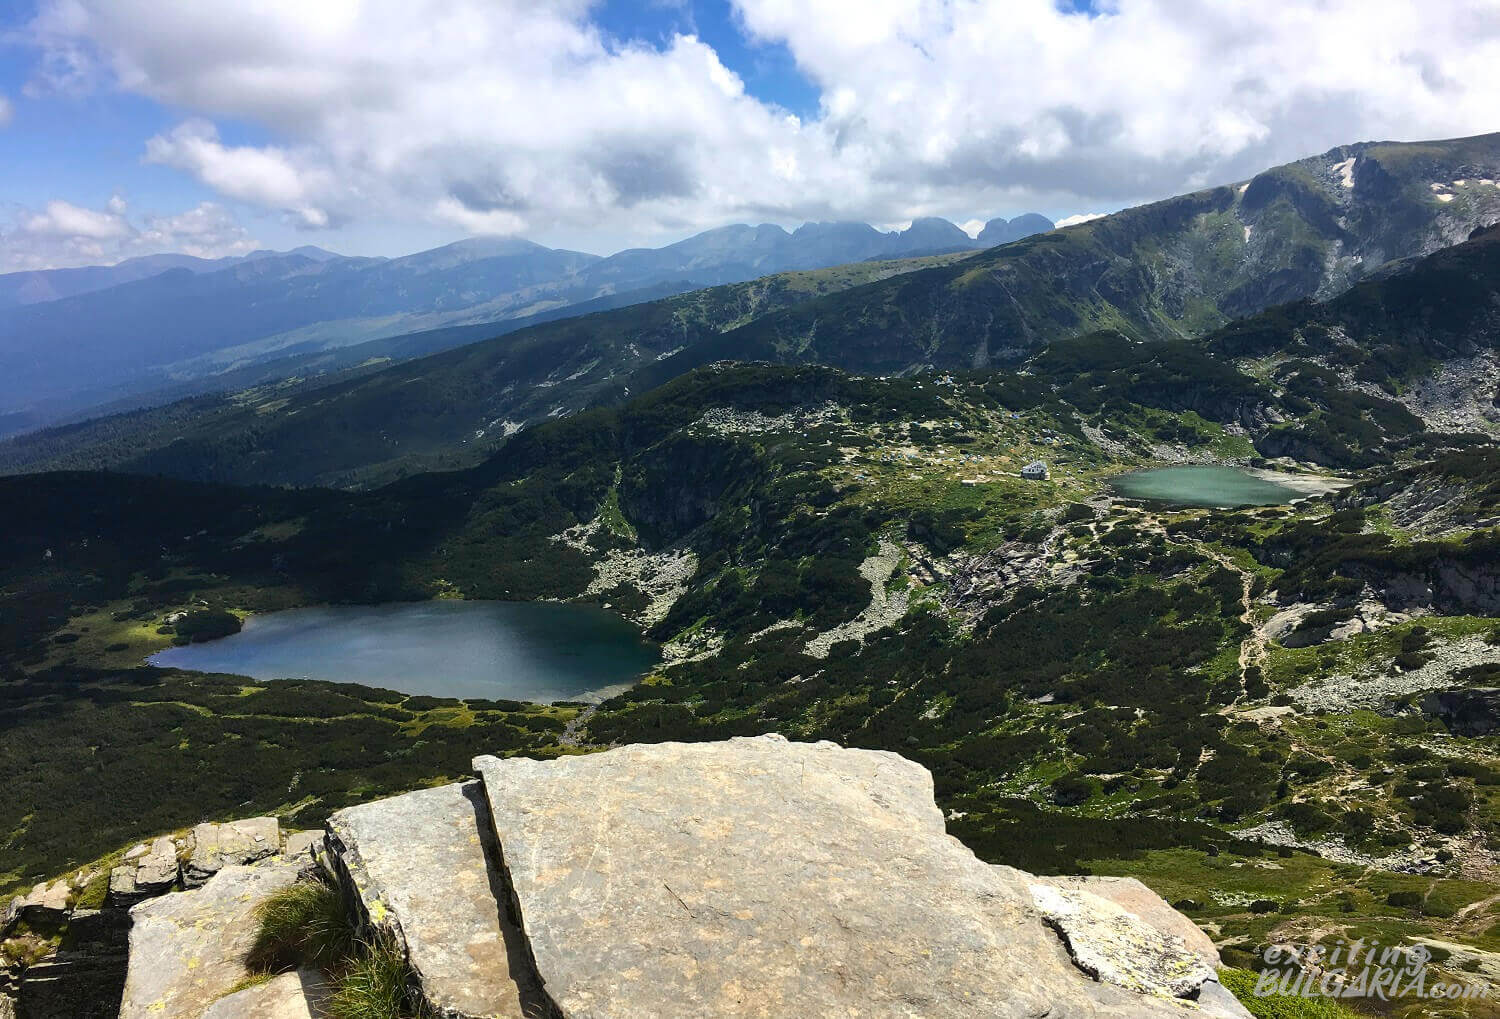 The Seven Rila Lakes area from above